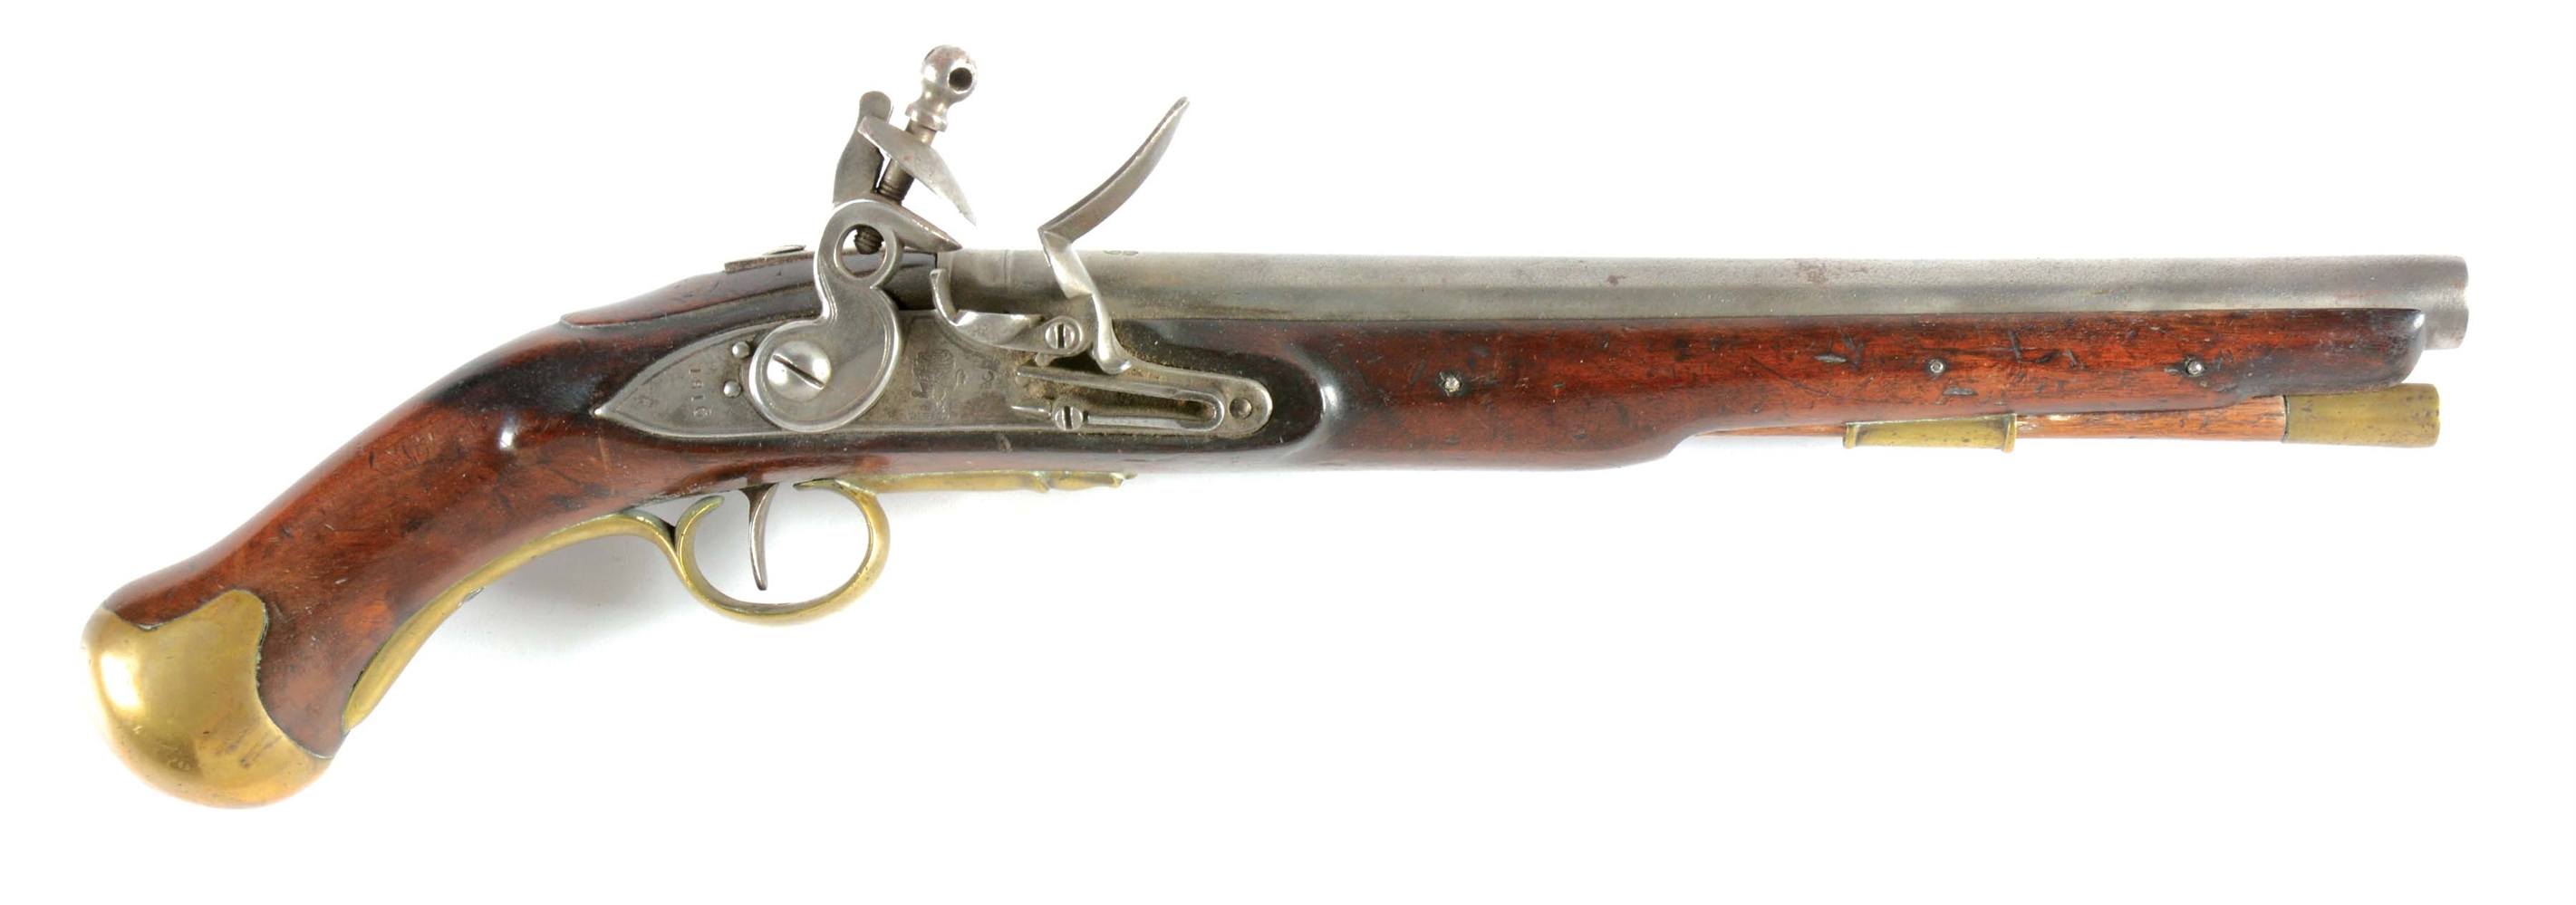 (A) EAST INDIA COMPANY BRITISH FLINTLOCK SEA SERVICE PISTOL.